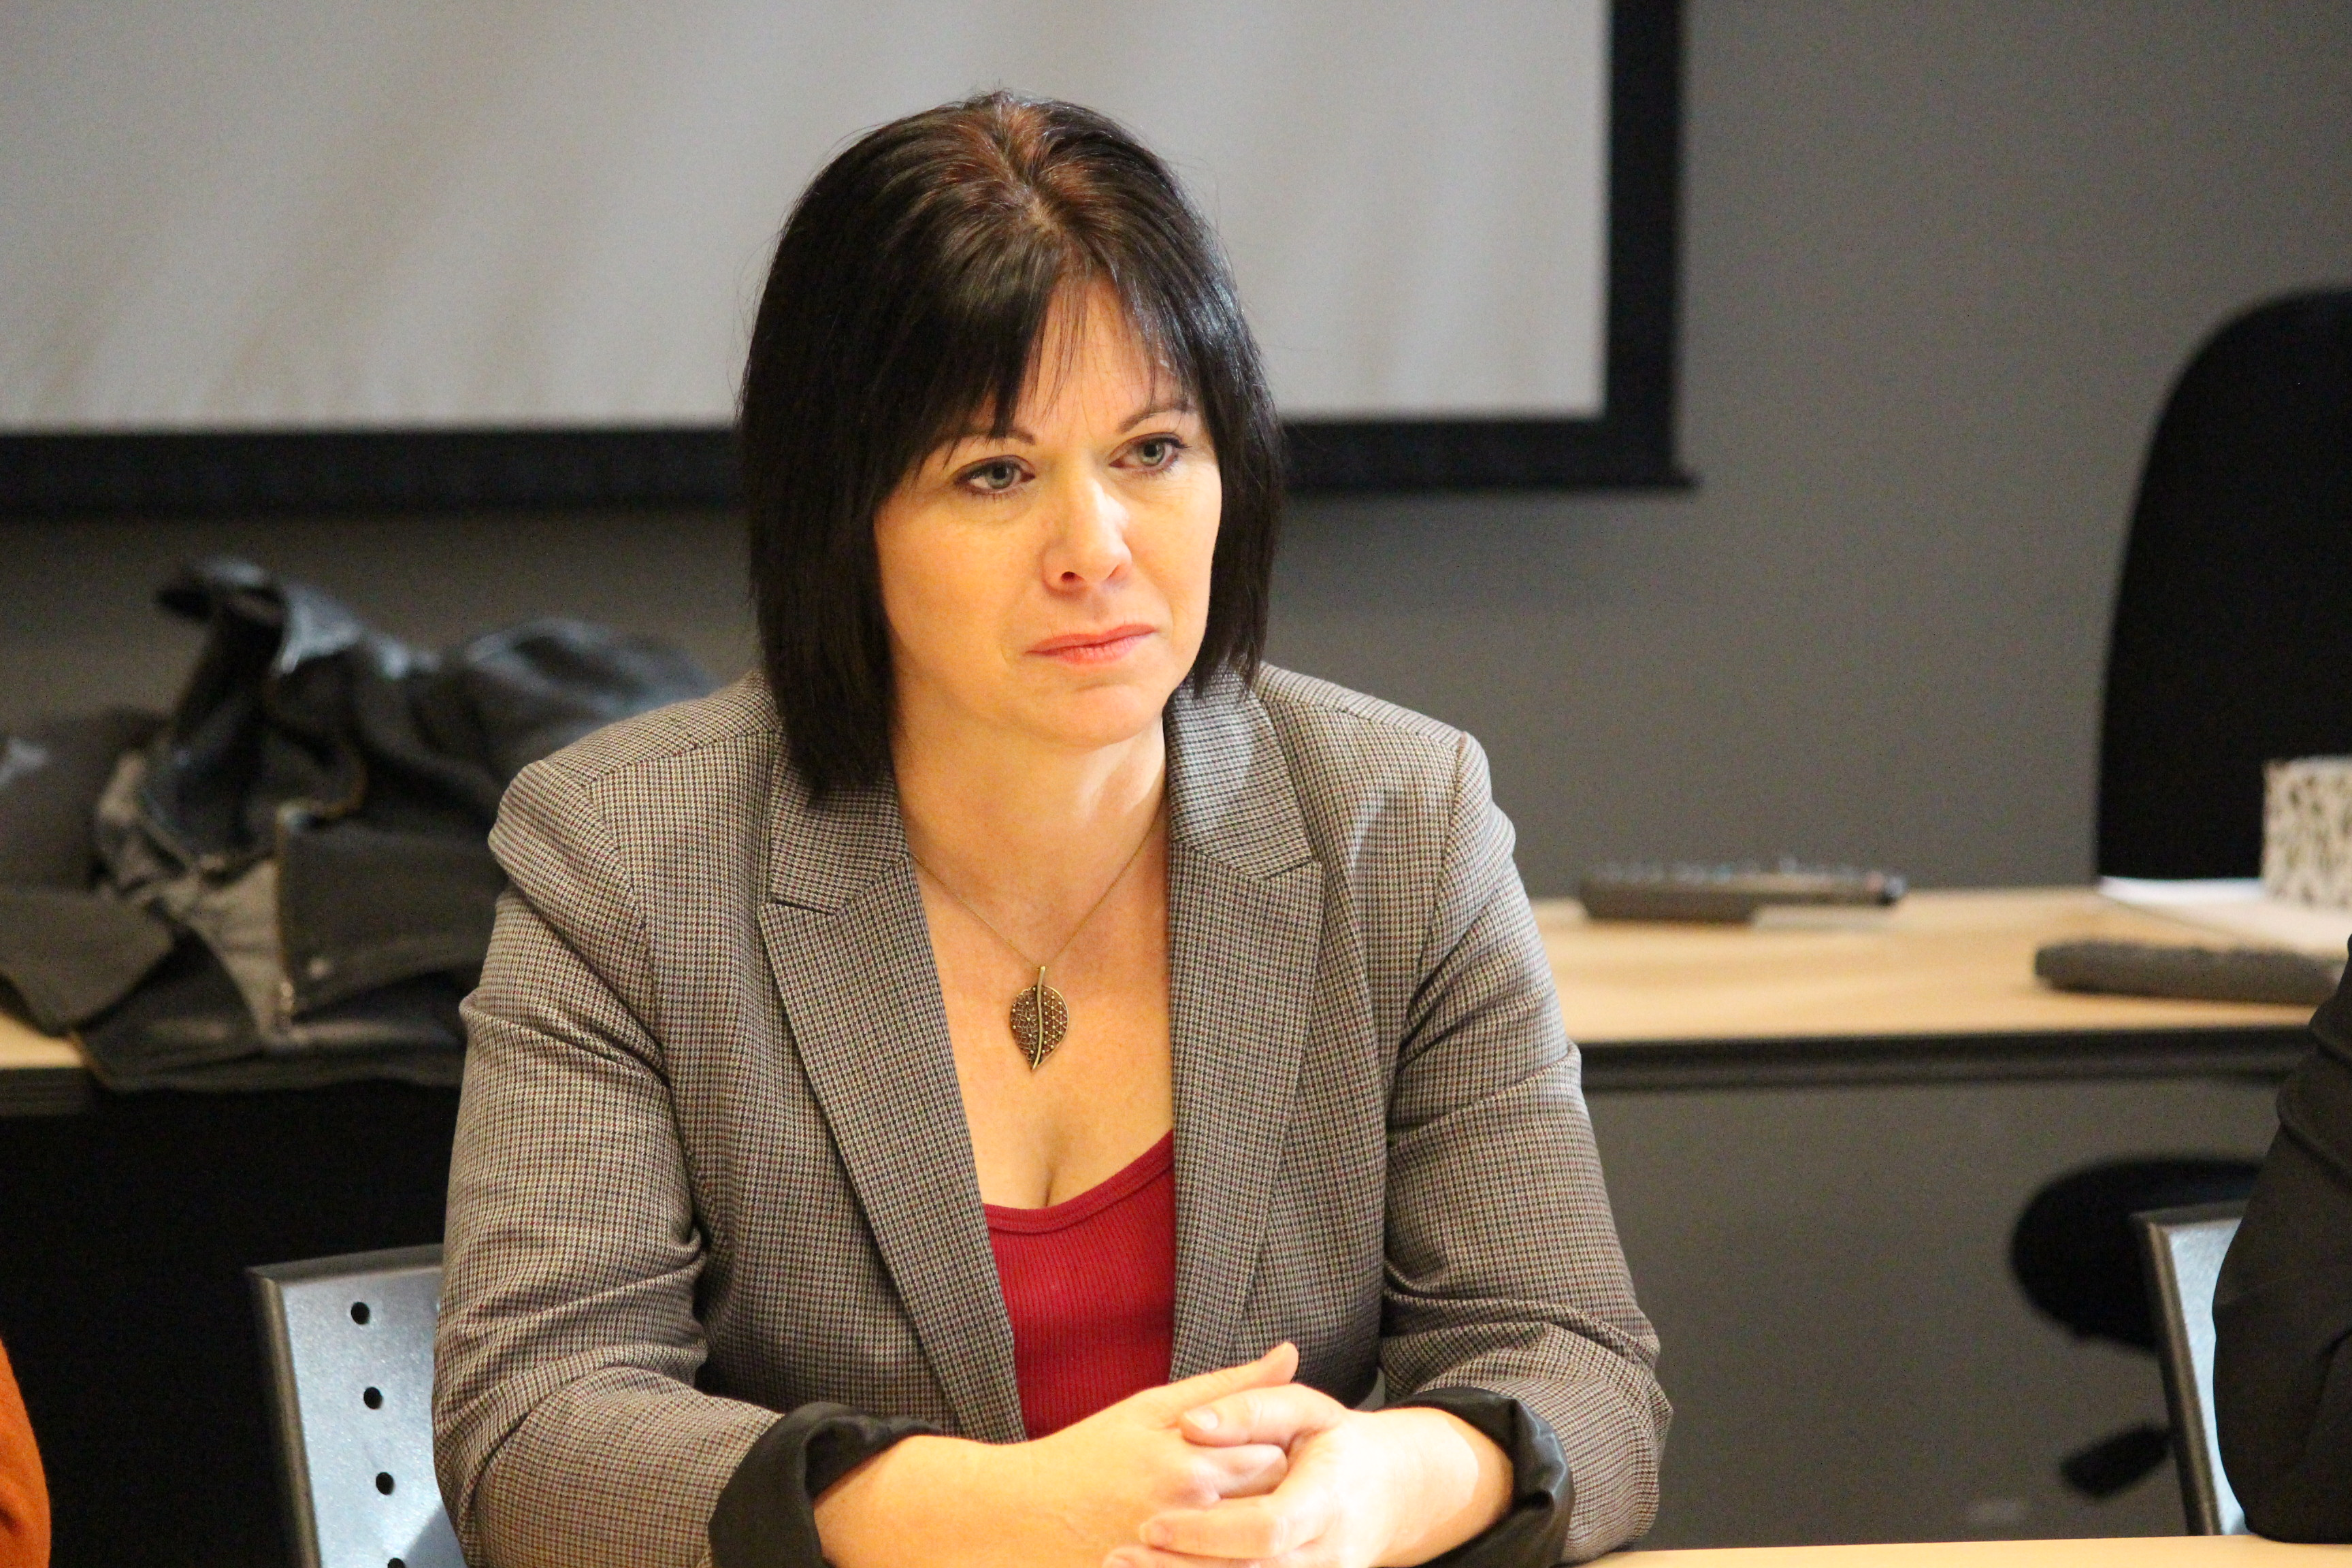 Windsor-West NDP MPP Lisa Gretzky listens to the stories of those affected by cuts at the CCAC. (Photo by Jason Viau)